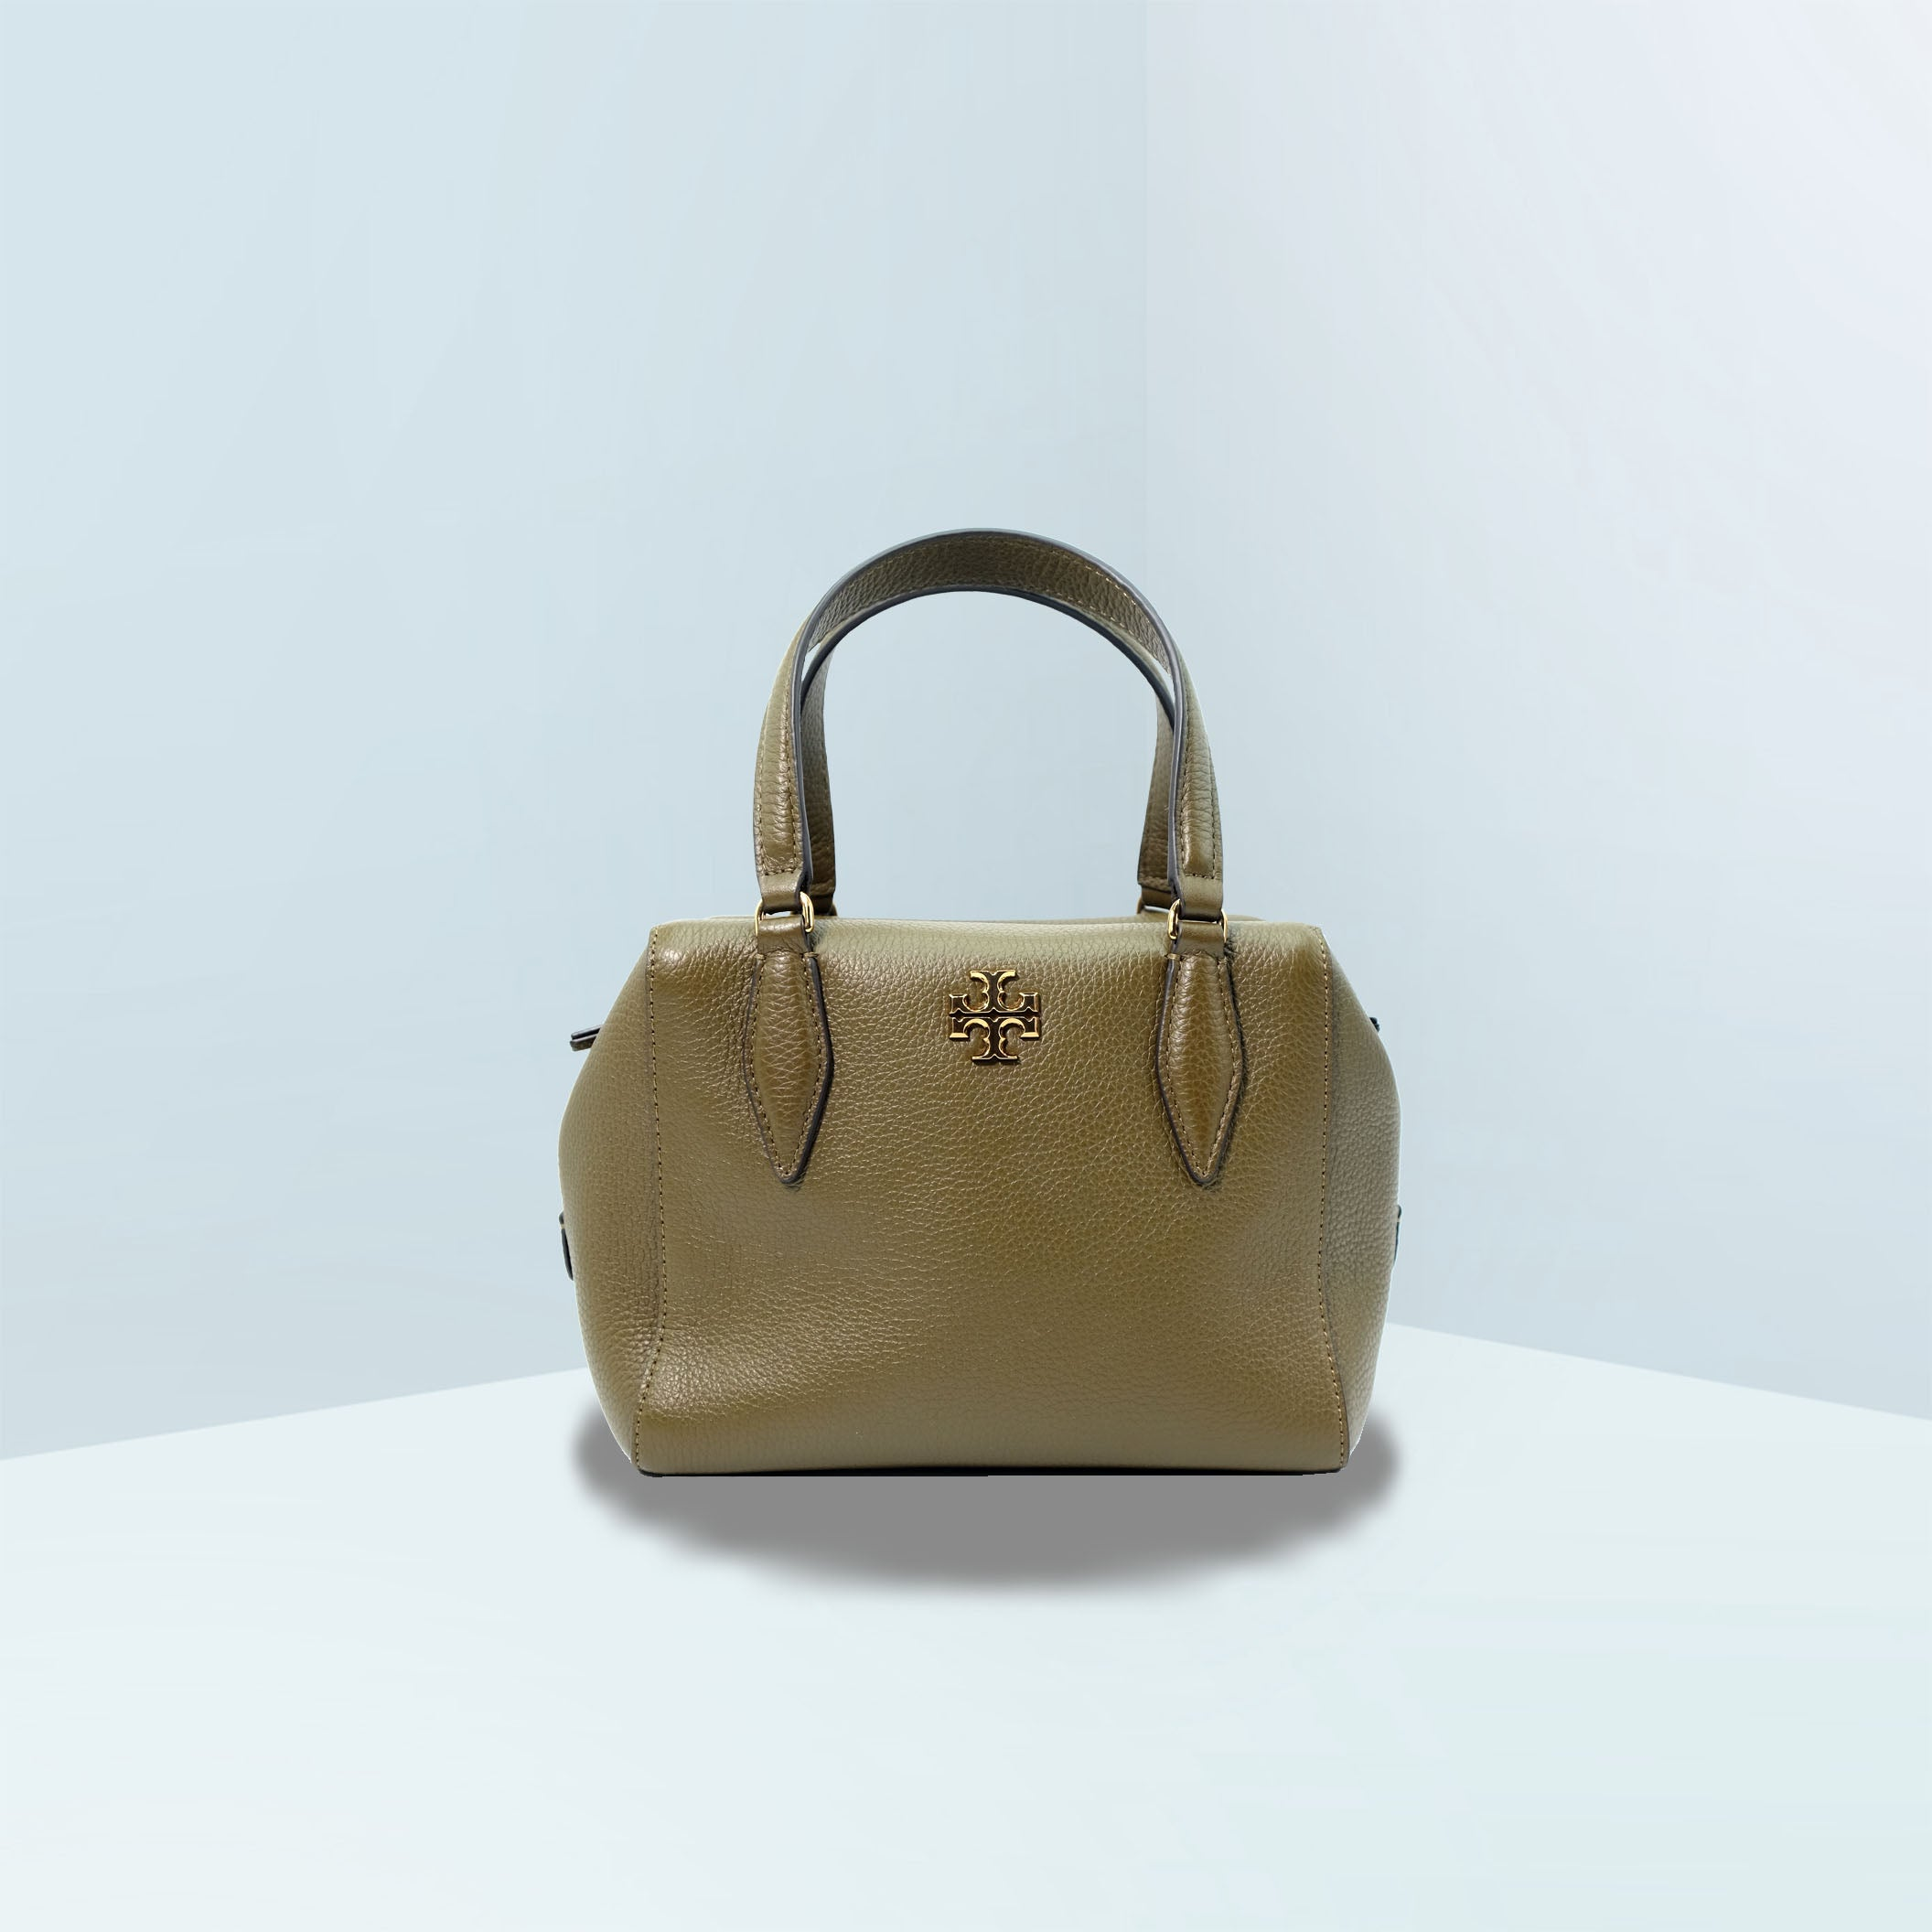 Kira Small Pebbled Satchel Bag